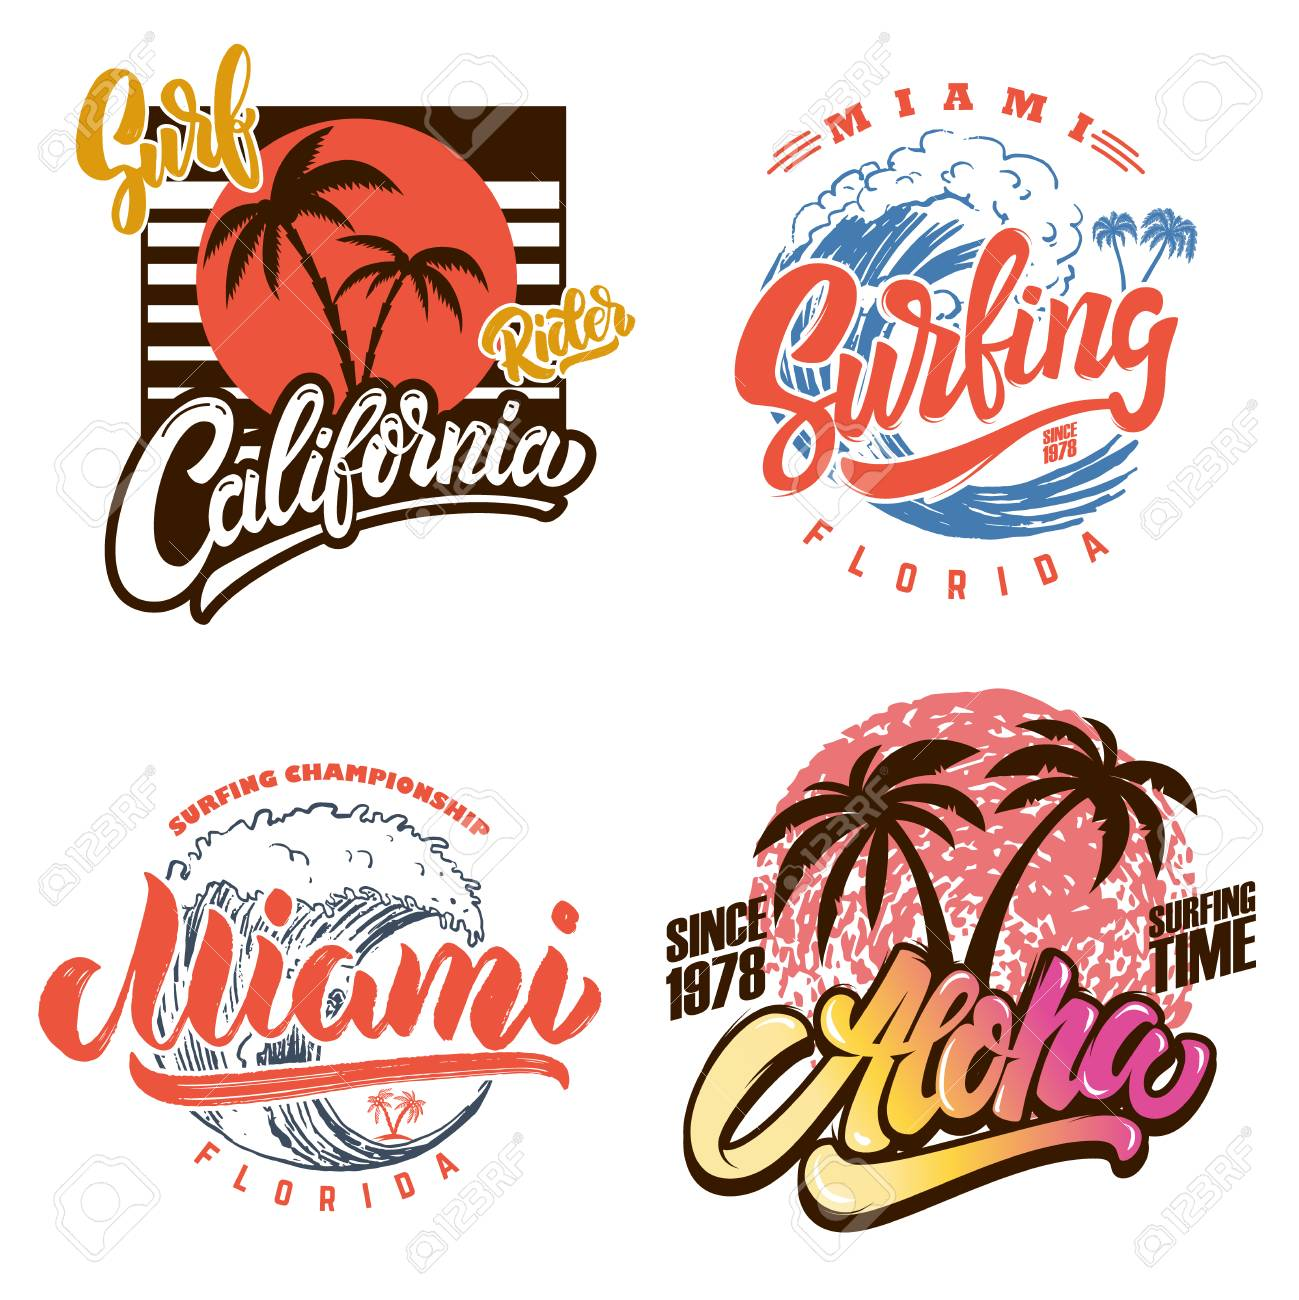 Hawaii surfing club. Miami. Poster templates with lettering and palms. Vector image - 105948494